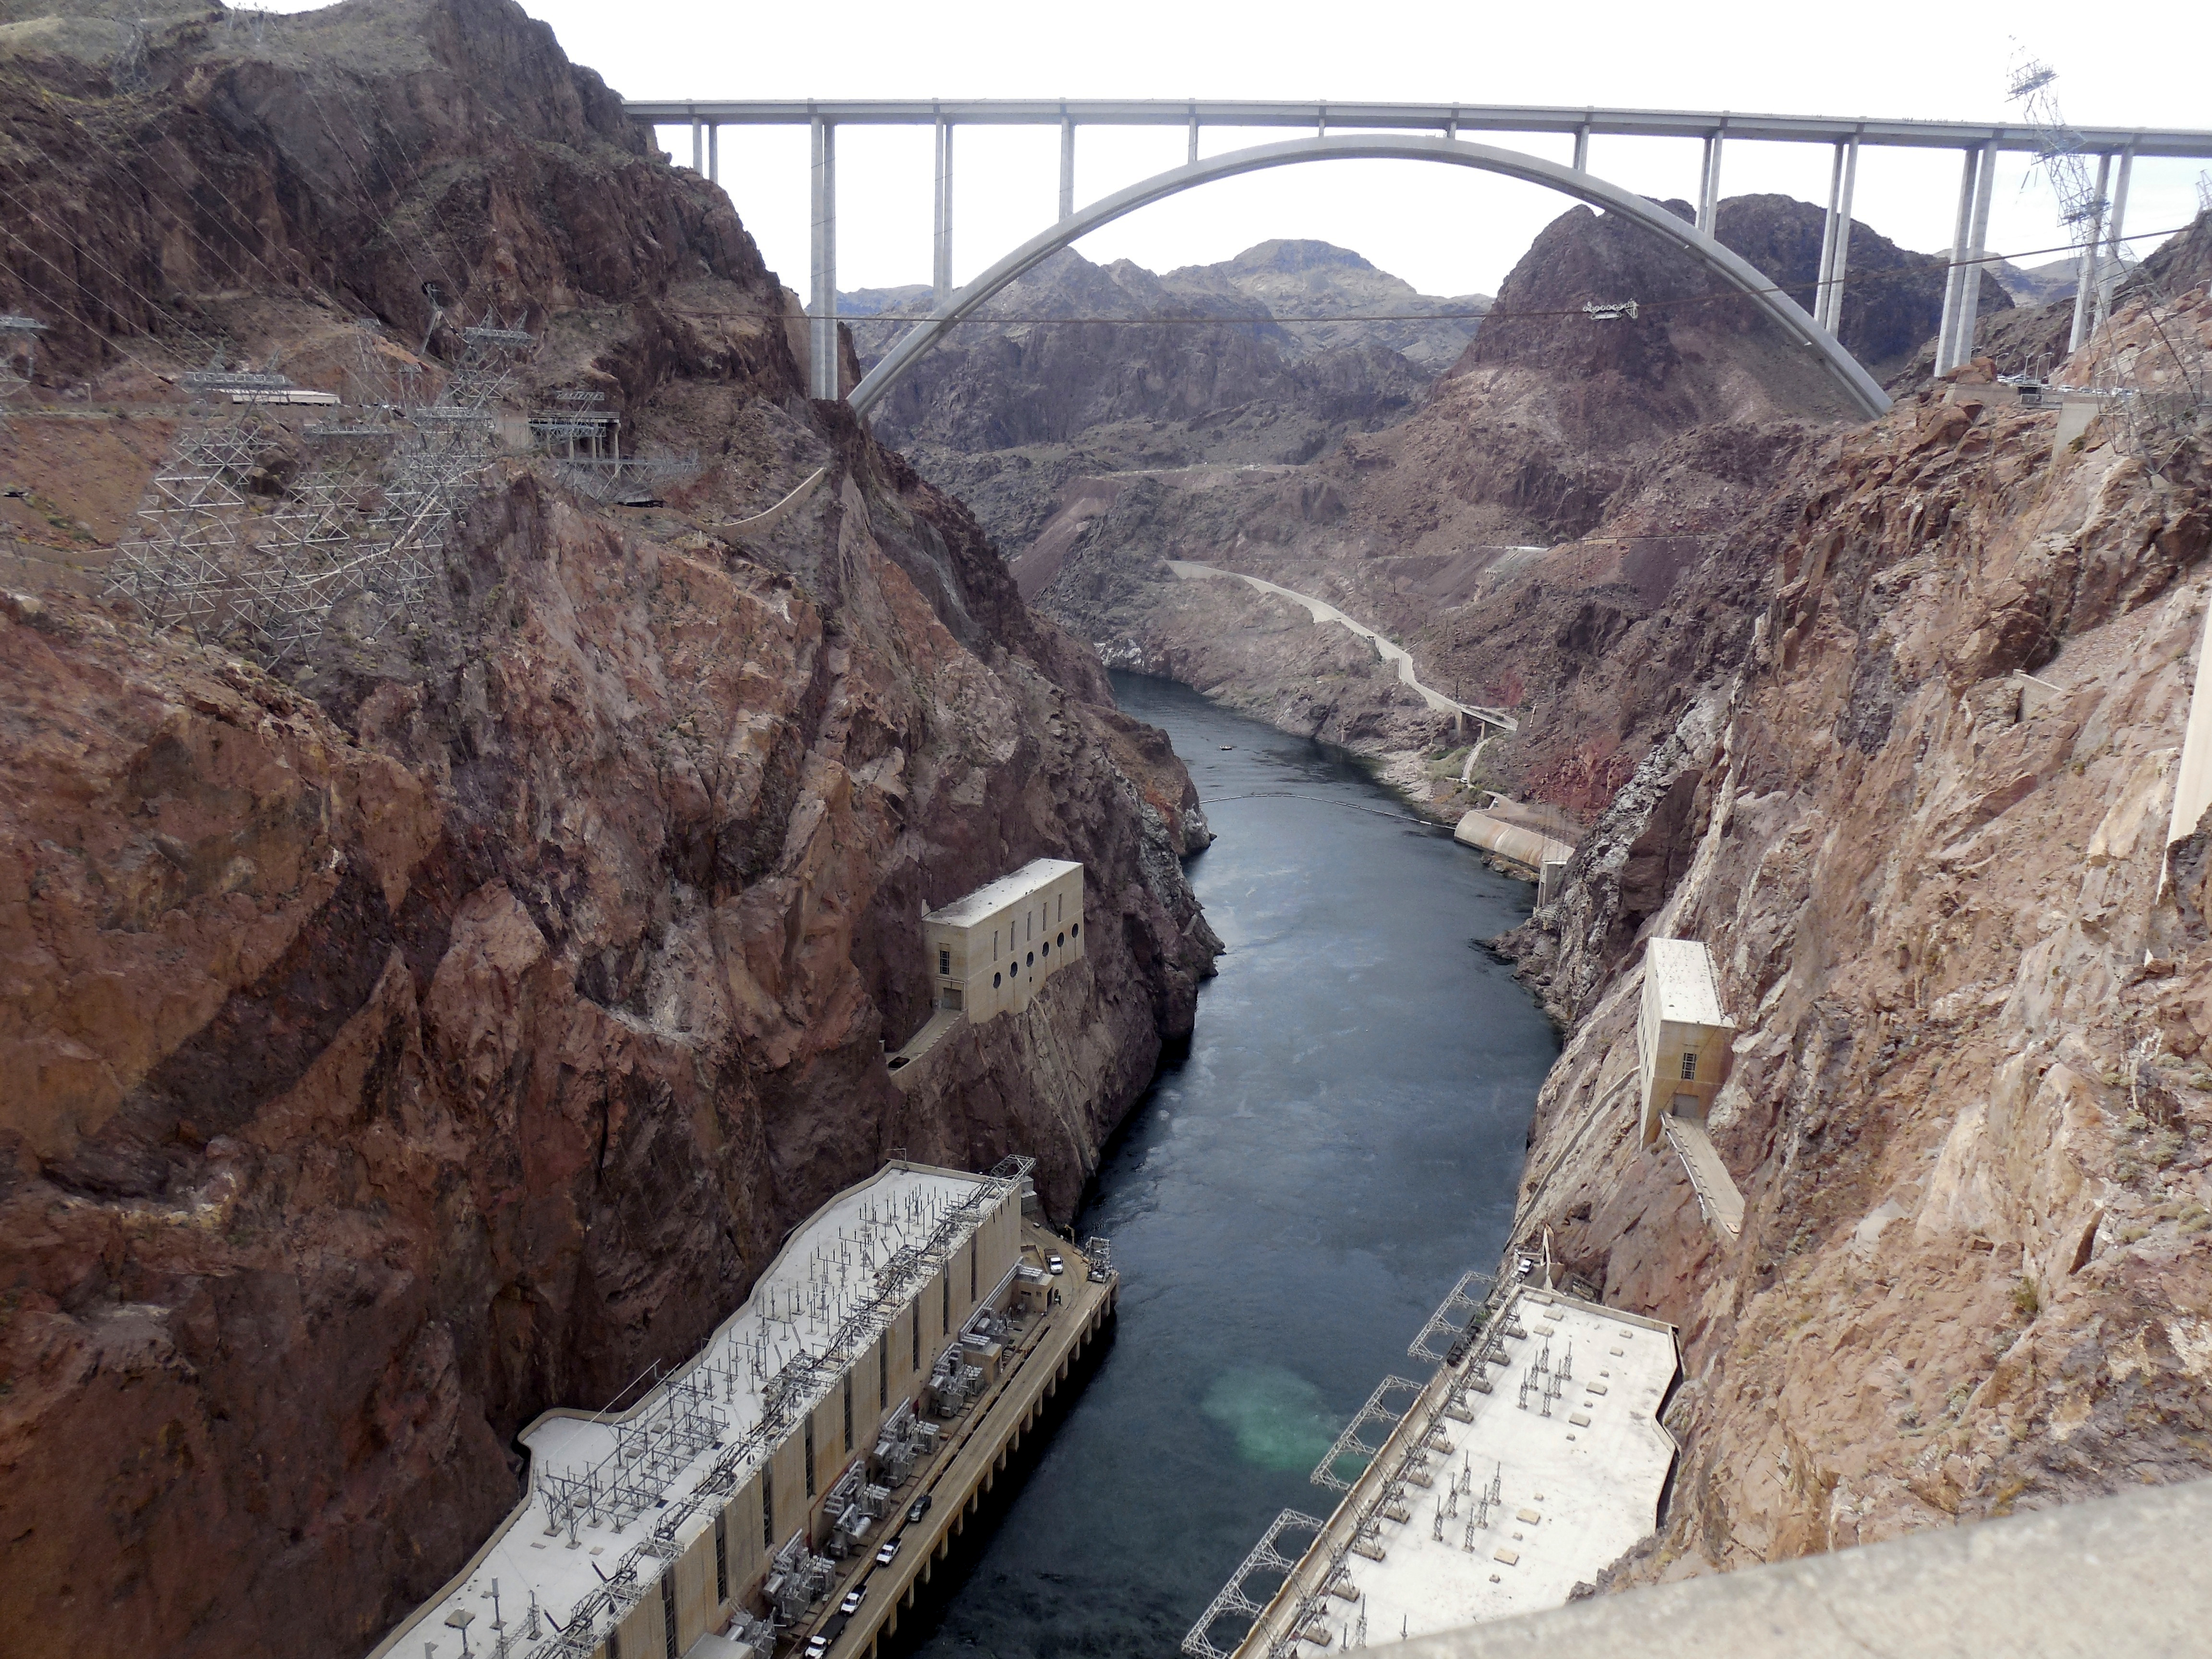 Hoover Dam in the Black Canyon of the Colorado River, on the border- Most surreal places to visit